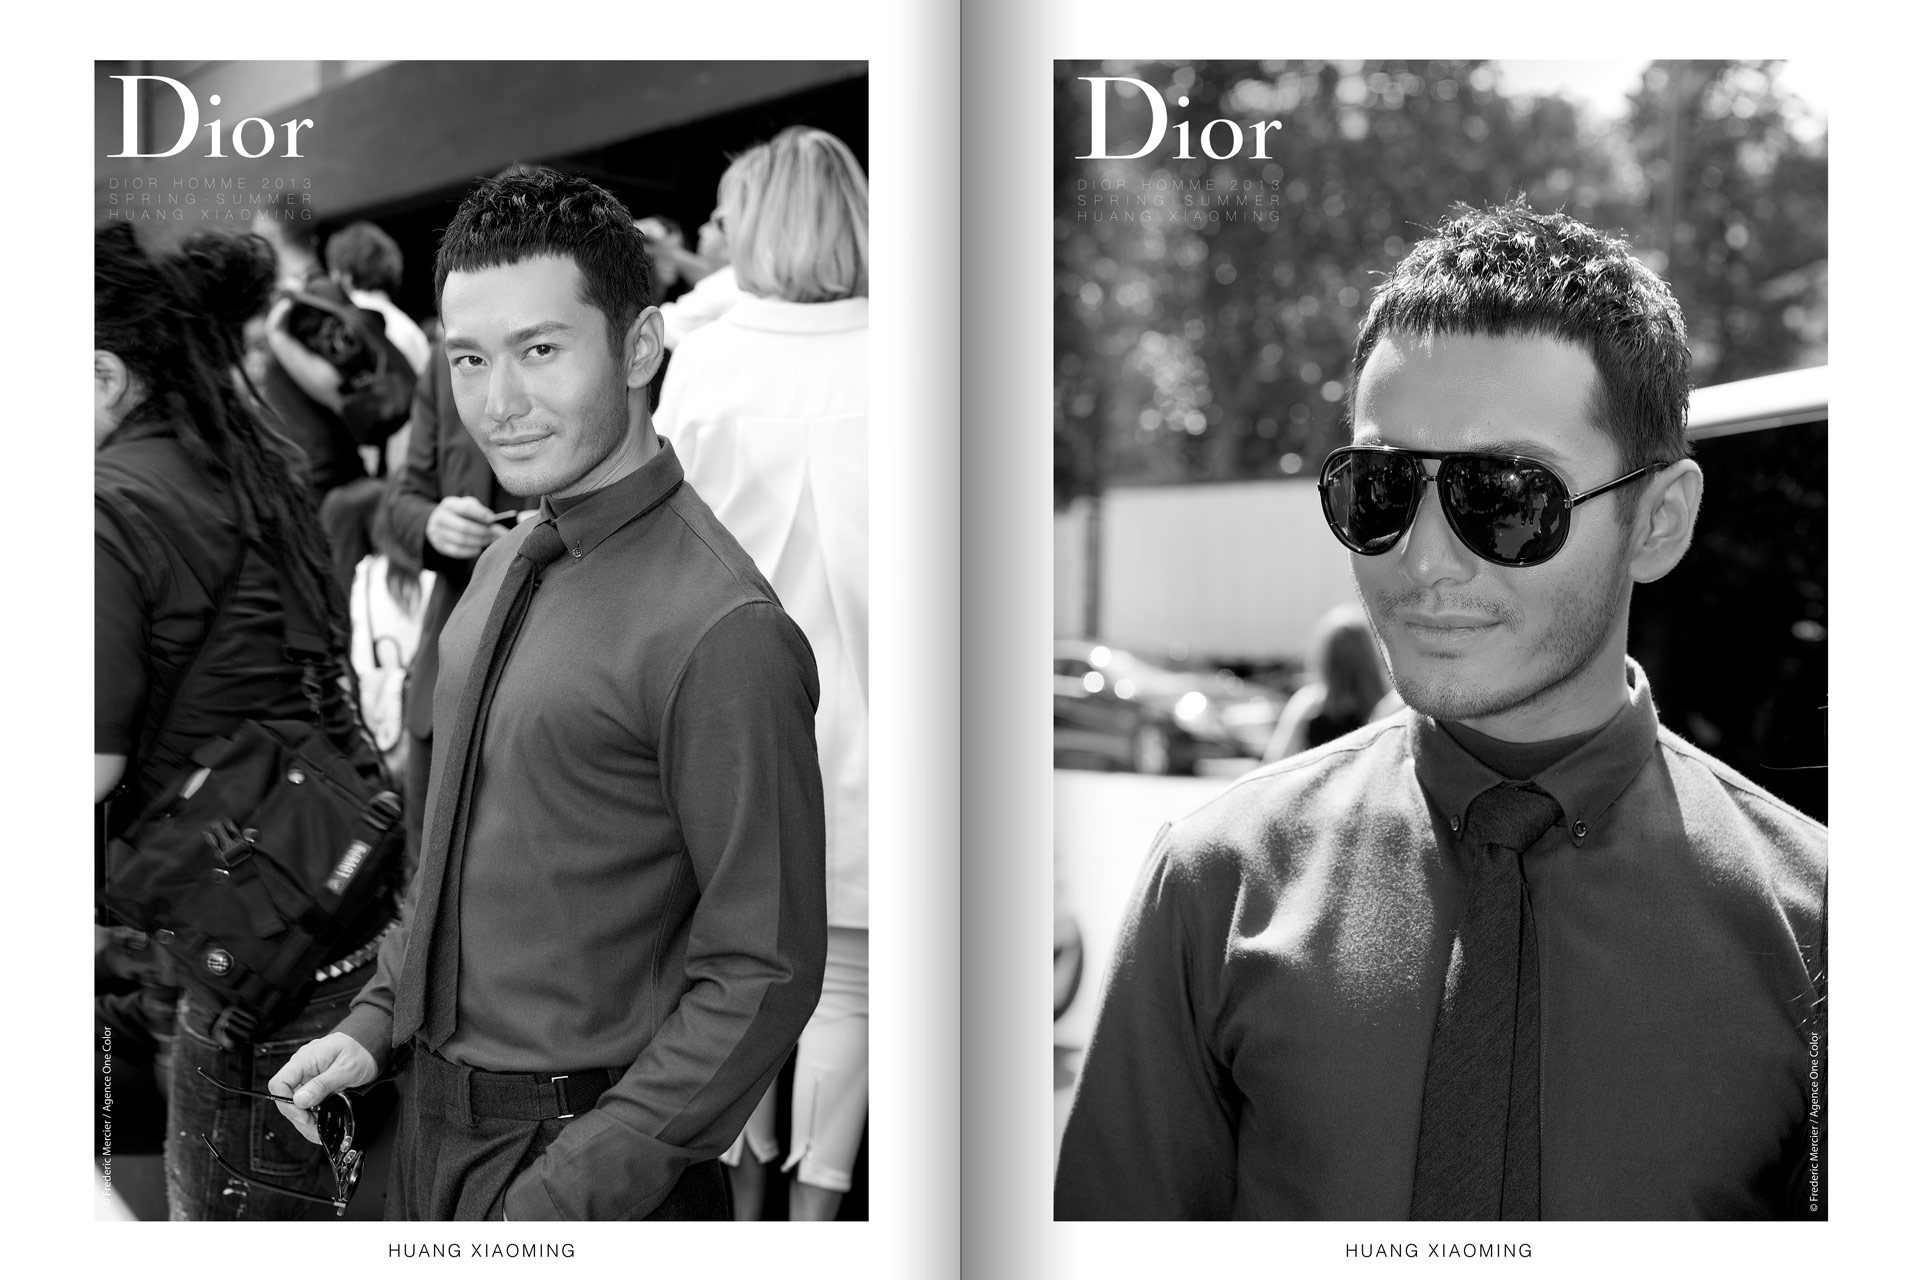 frederic mercier fashion photographer one color portraits people huang xiaoming for dior